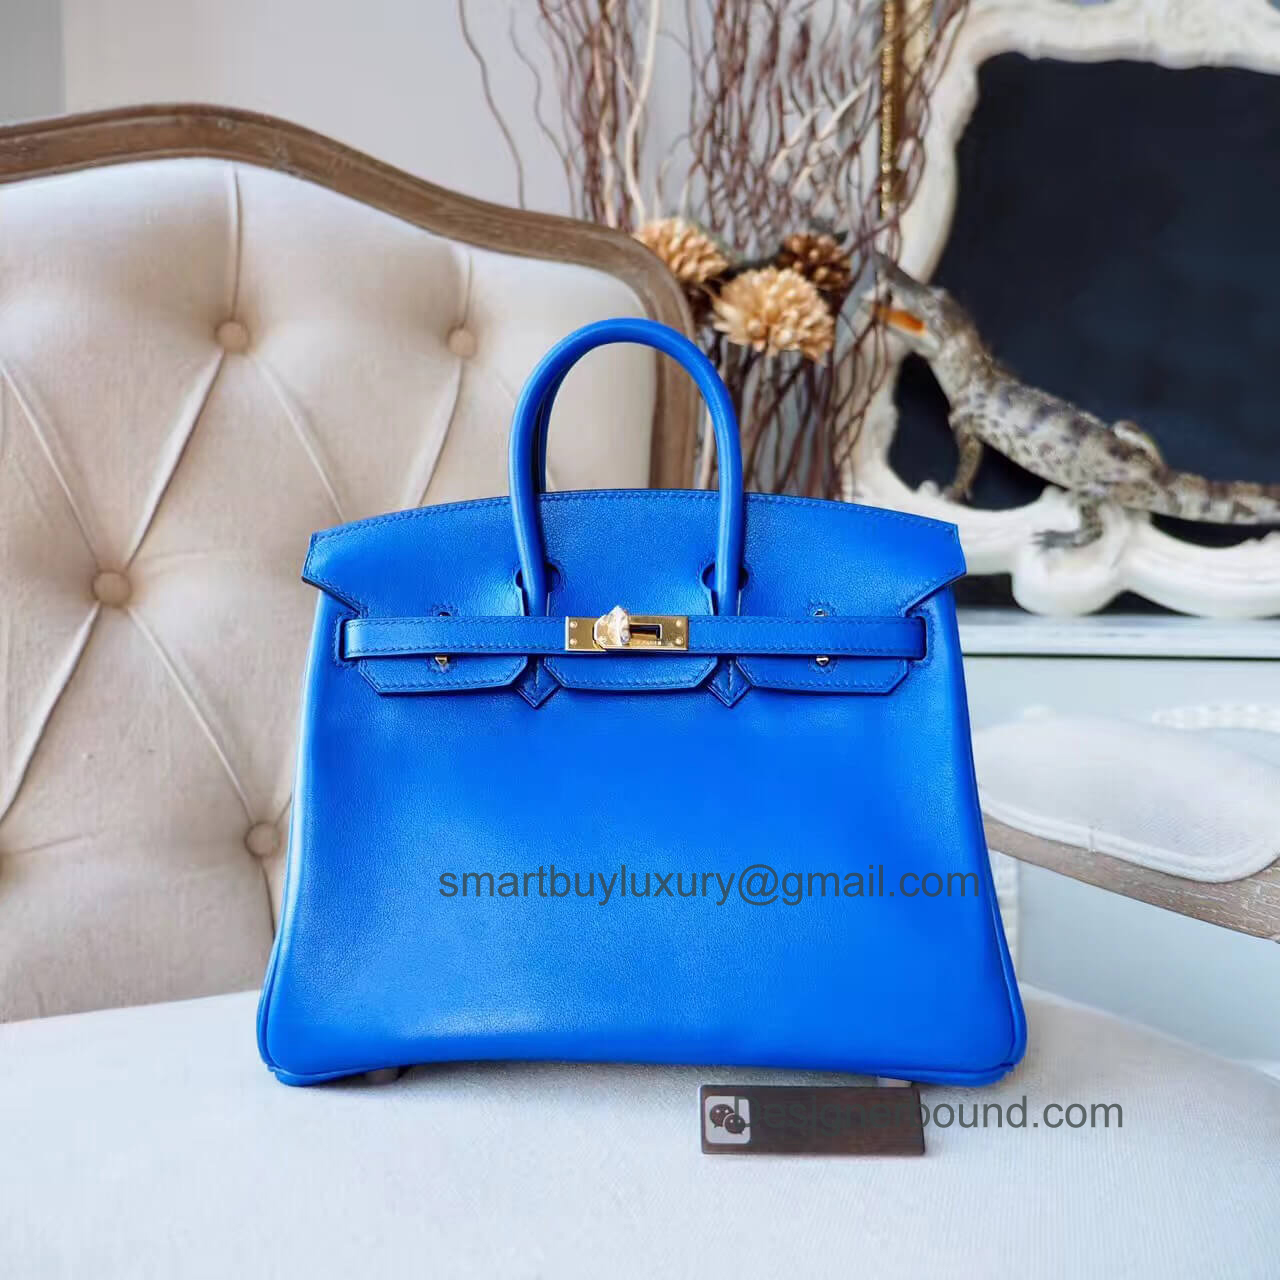 Hermes Birkin 25 Bag in 7t Blue Electric Swift GHW